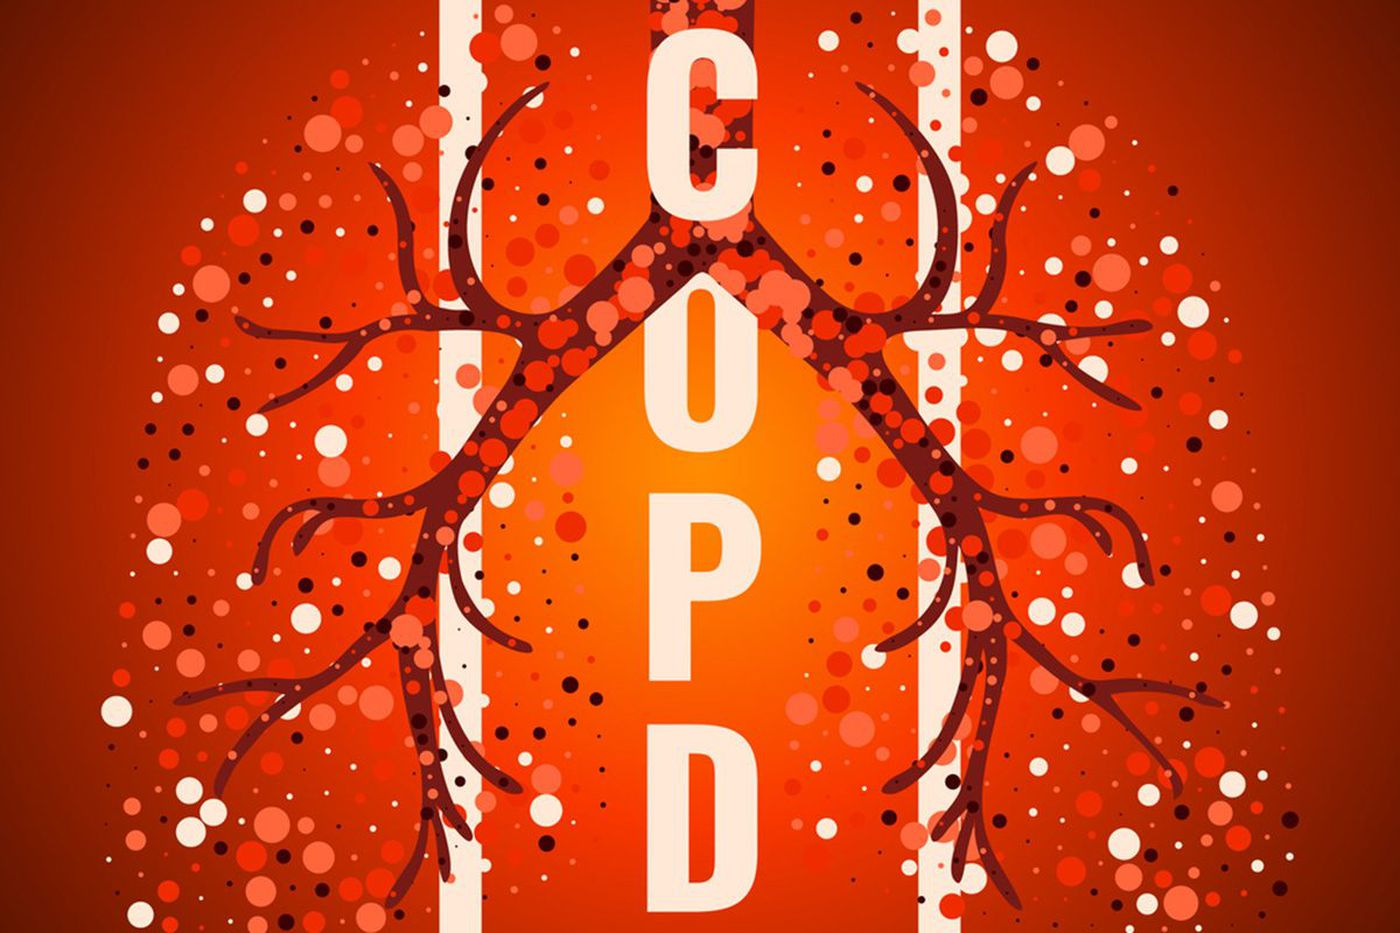 Q&A: What do I need to know about COPD?